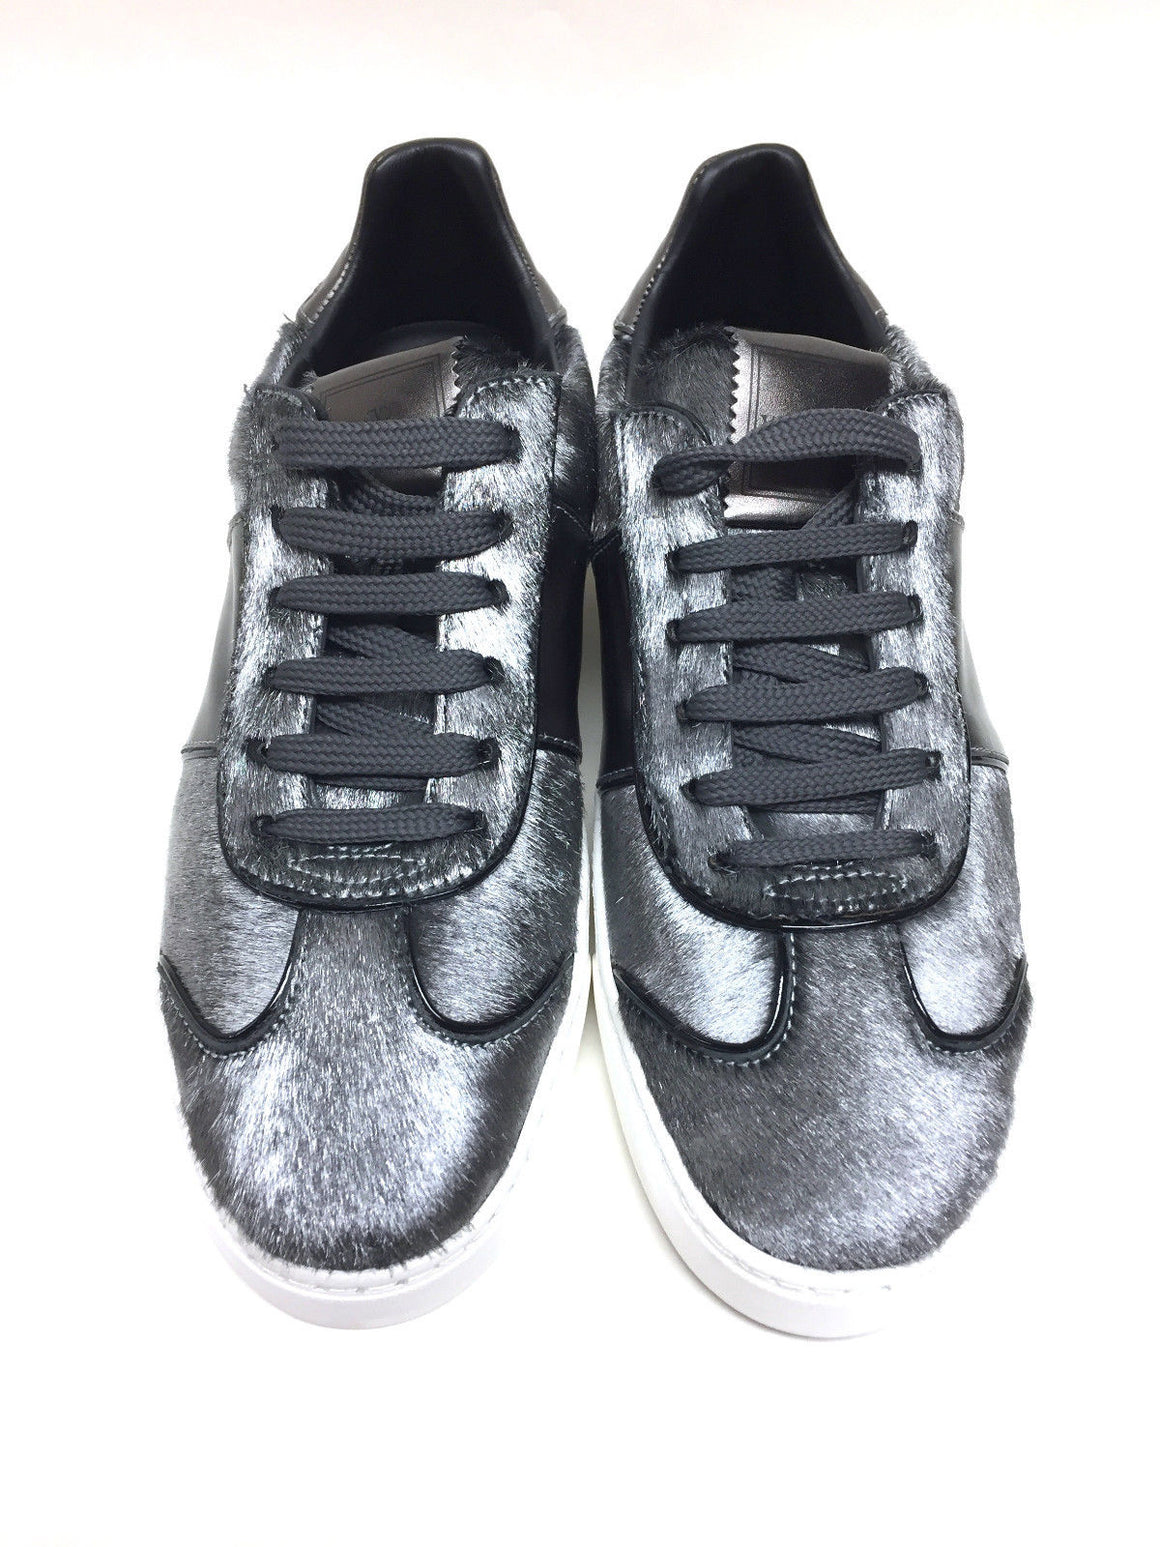 bisbiz.com VALENTINO New Silver Calf-Hair Pewter Leather Rock-Studded Heels Sneakers  Size: EU 38/ US 7.5-8 - Bis Luxury Resale